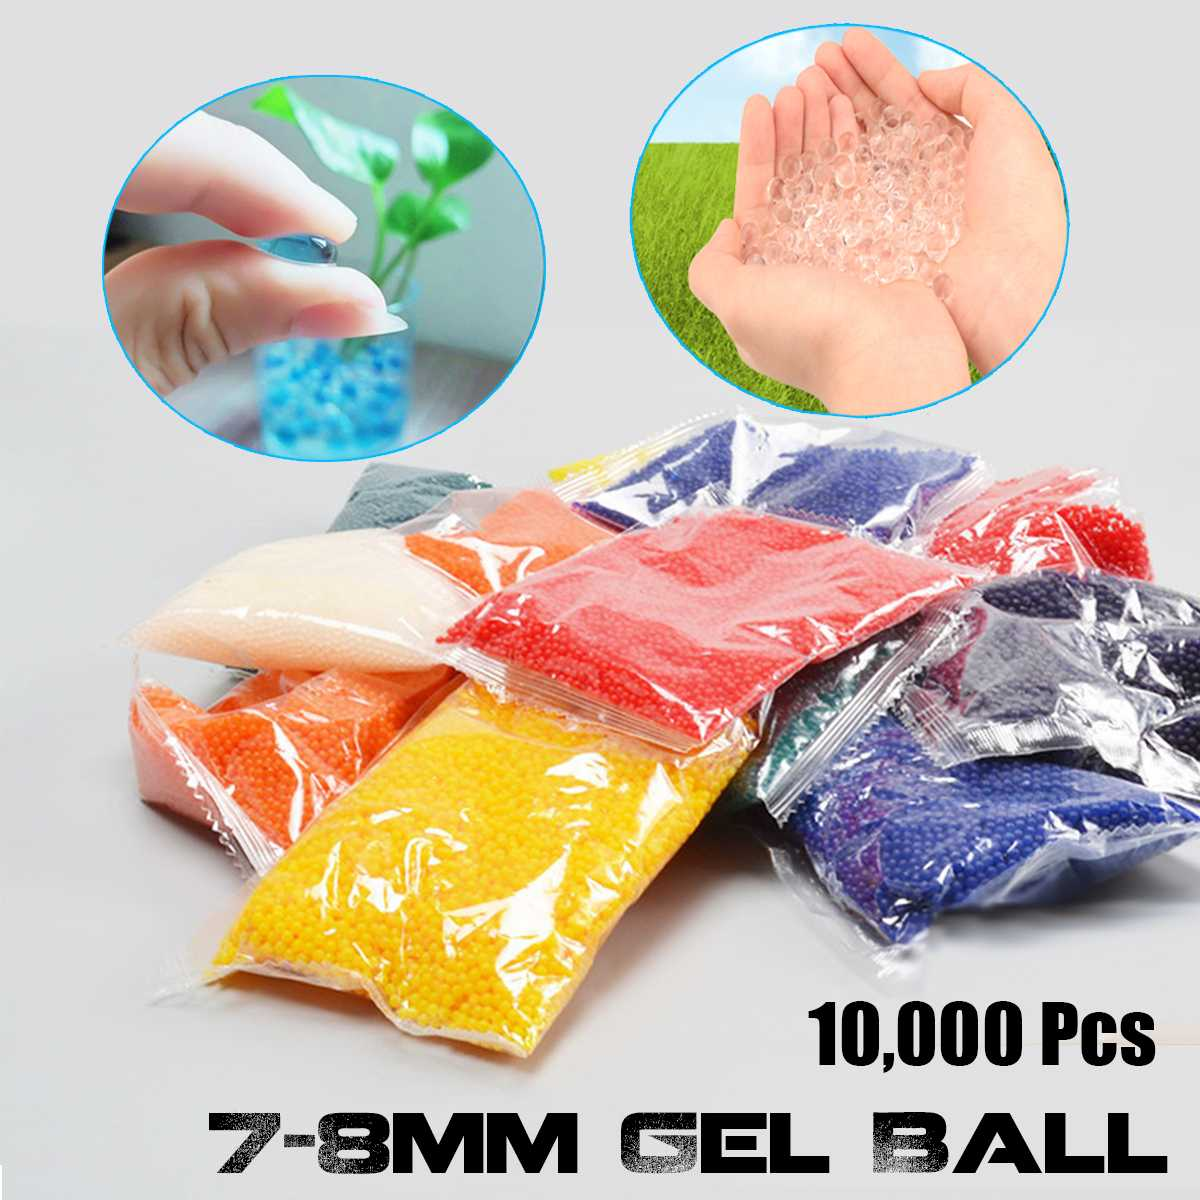 10000Pcs 7-8 Mm  Crystal Bullets Water Ammo Beads For Gel Ball Guns Blasters Toy Water Guns Ammo Shotting Bullets